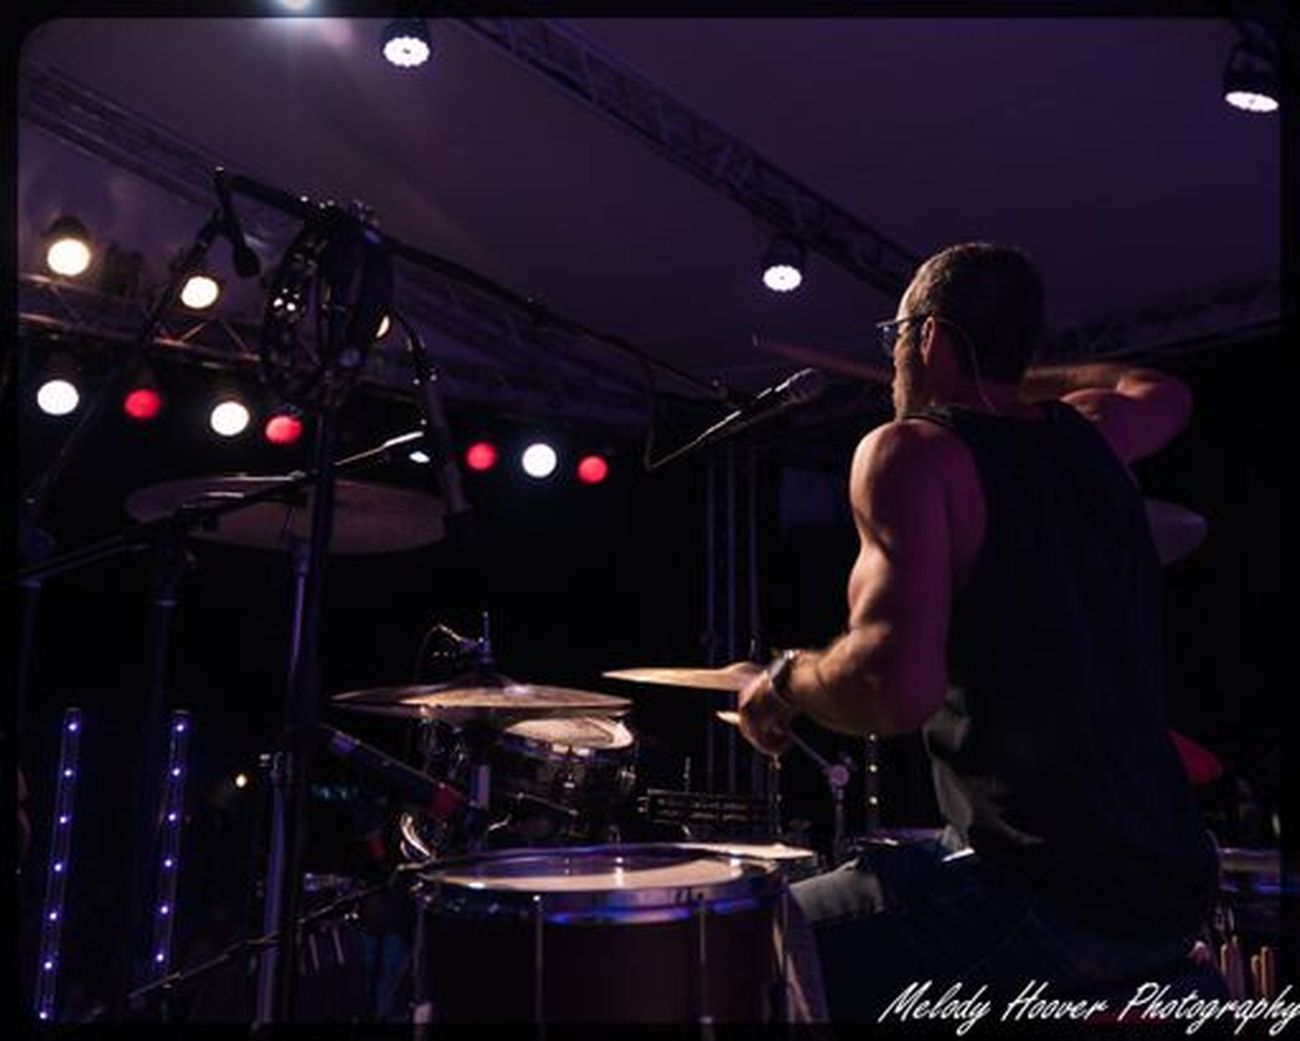 David Aguiar on drums for The Brevet during the final concert of the Levitt AMP summer series in Carson City NV at the Brewery Arts Center.